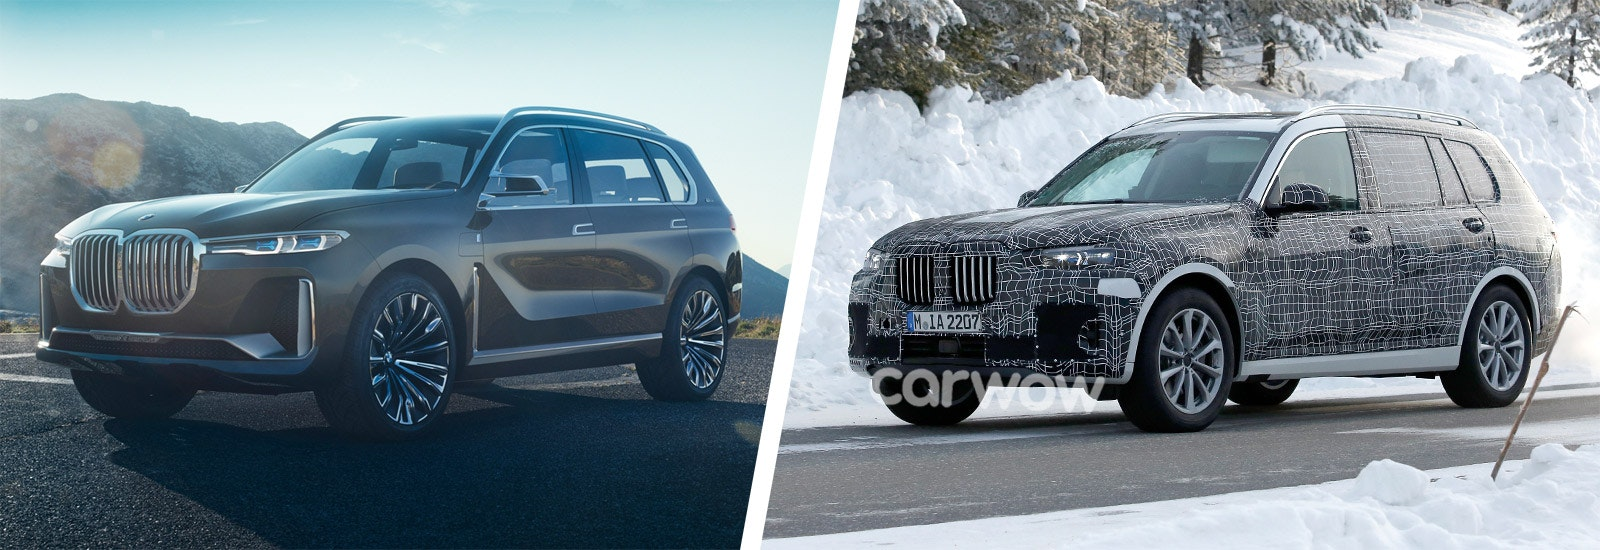 2018 BMW X7 price, specs and release date | carwow